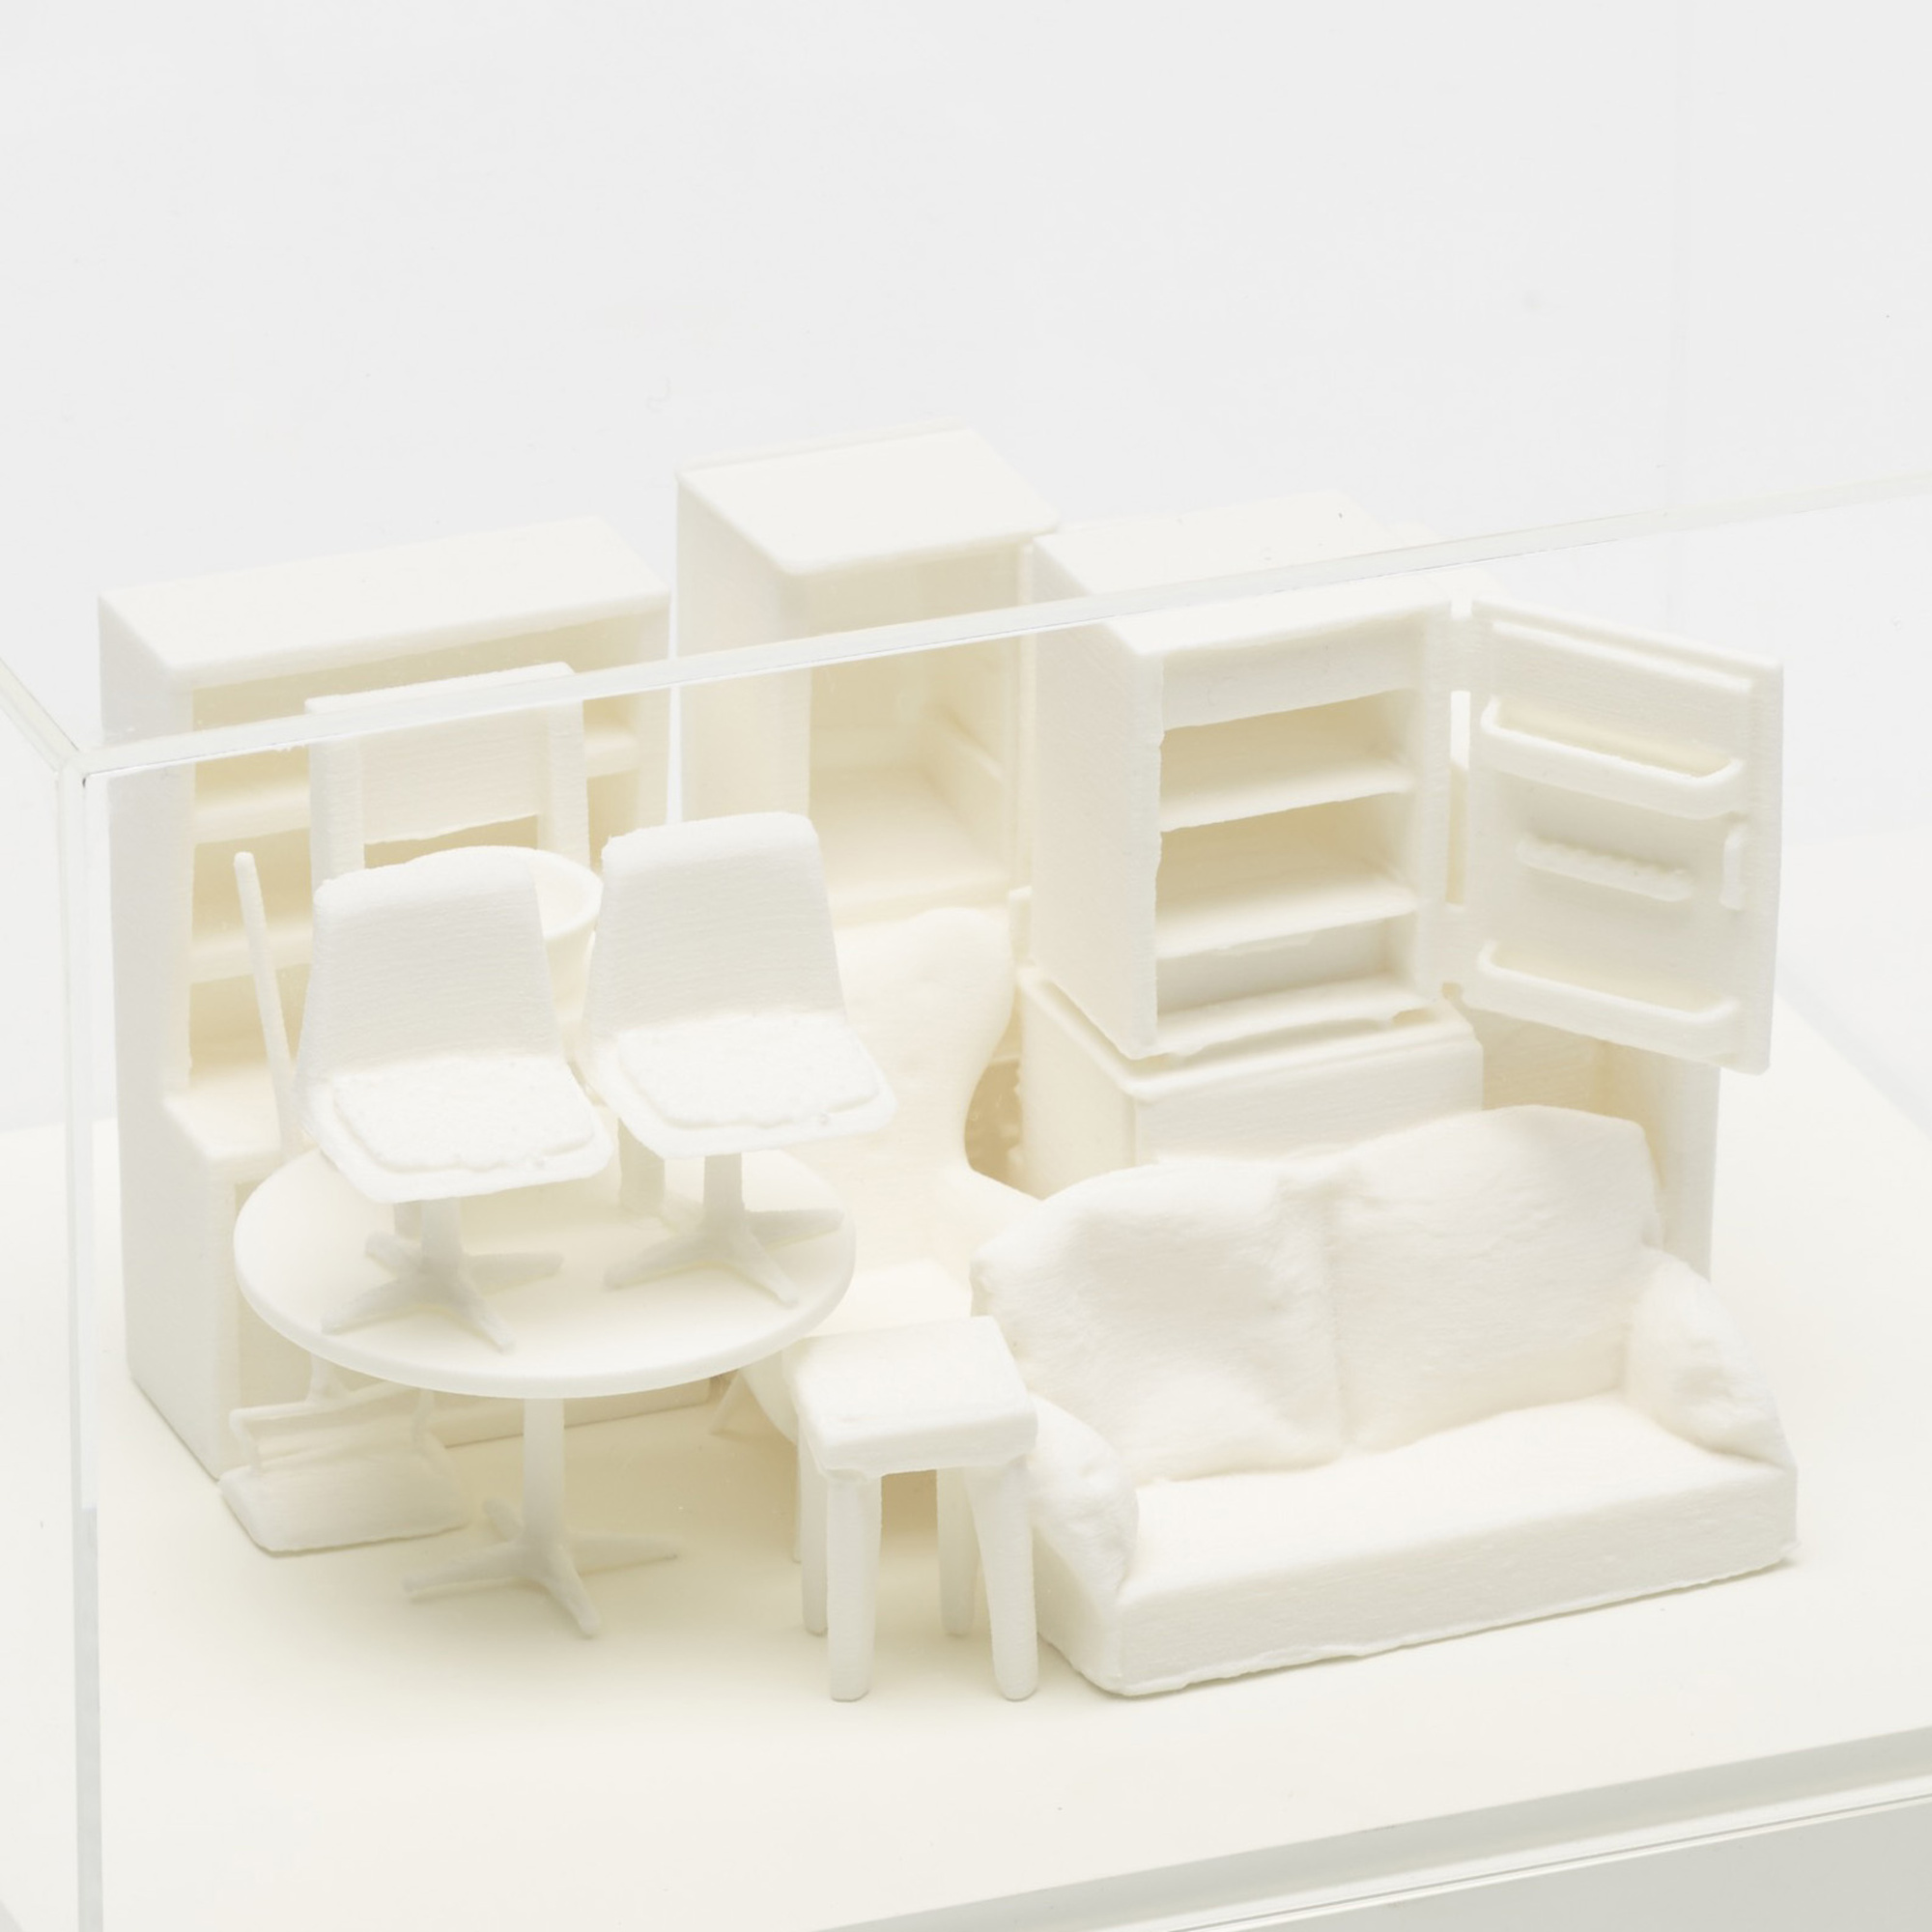 138: Rachel Whiteread / Secondhand (3 of 3)